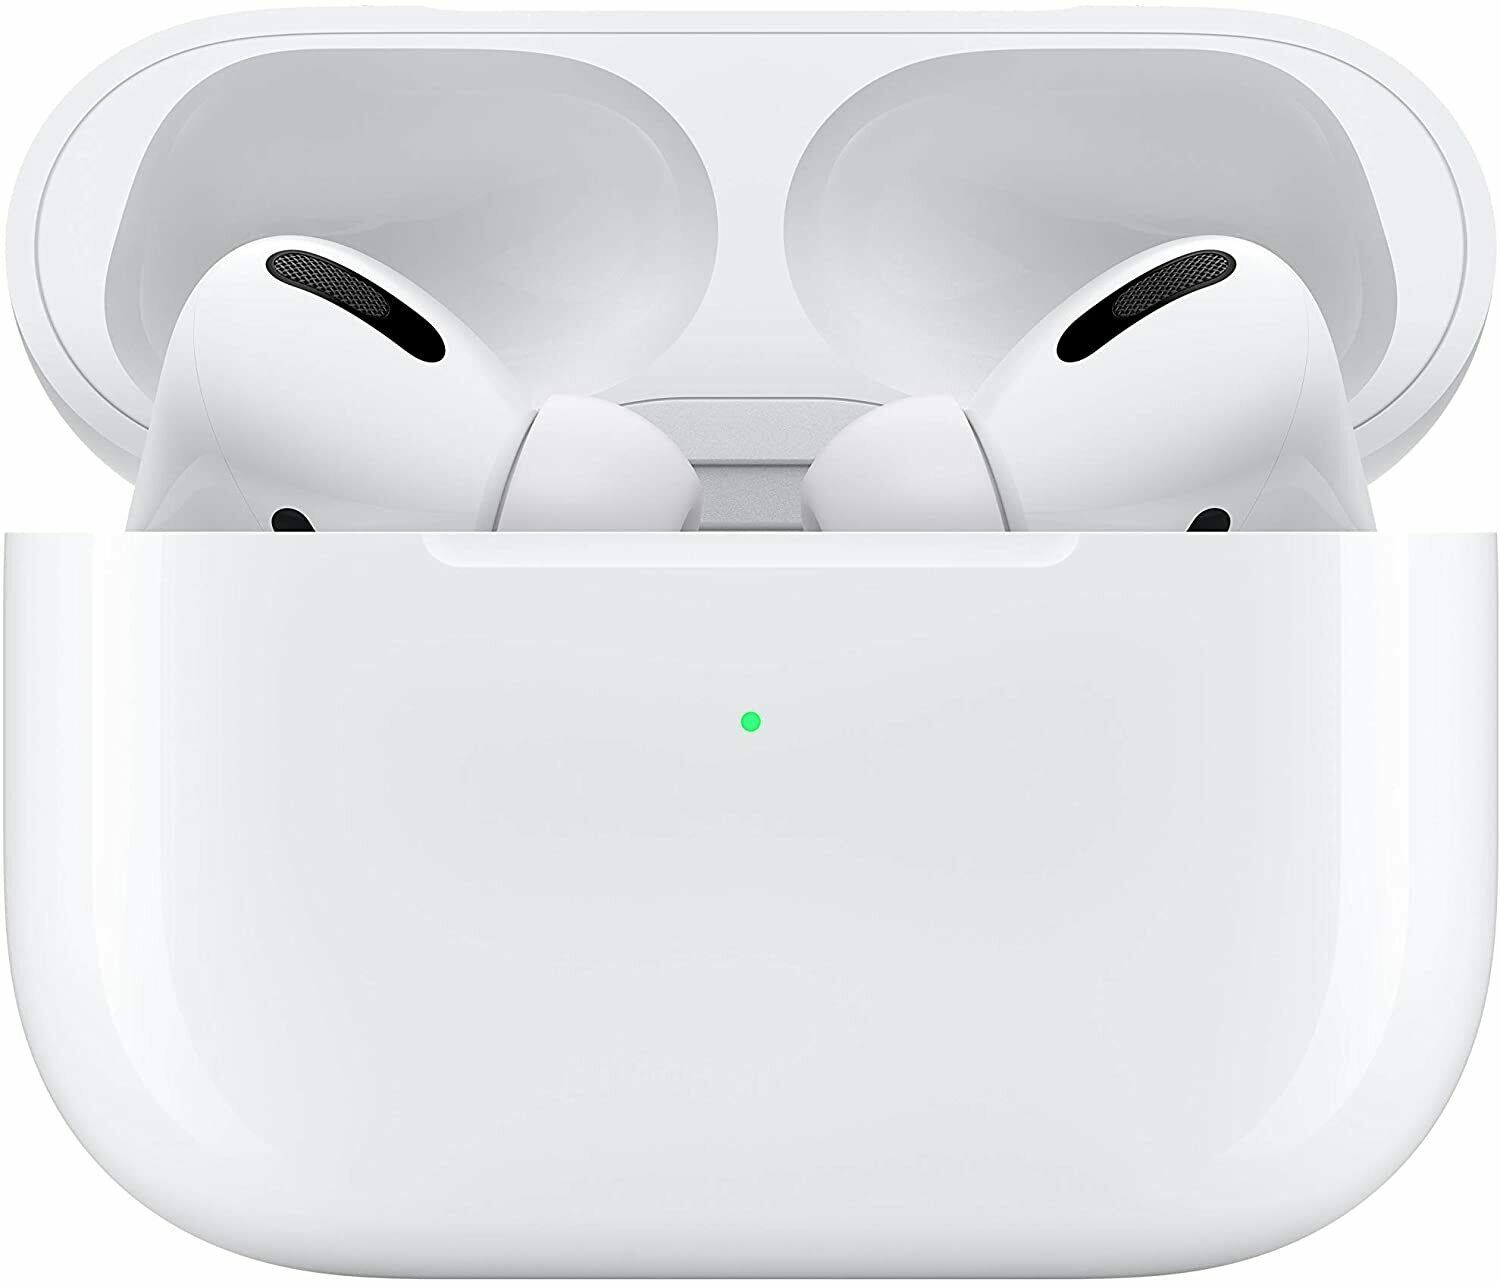 100% Authentic Apple AirPods Pro with Wireless Charging Case: Condition 8+